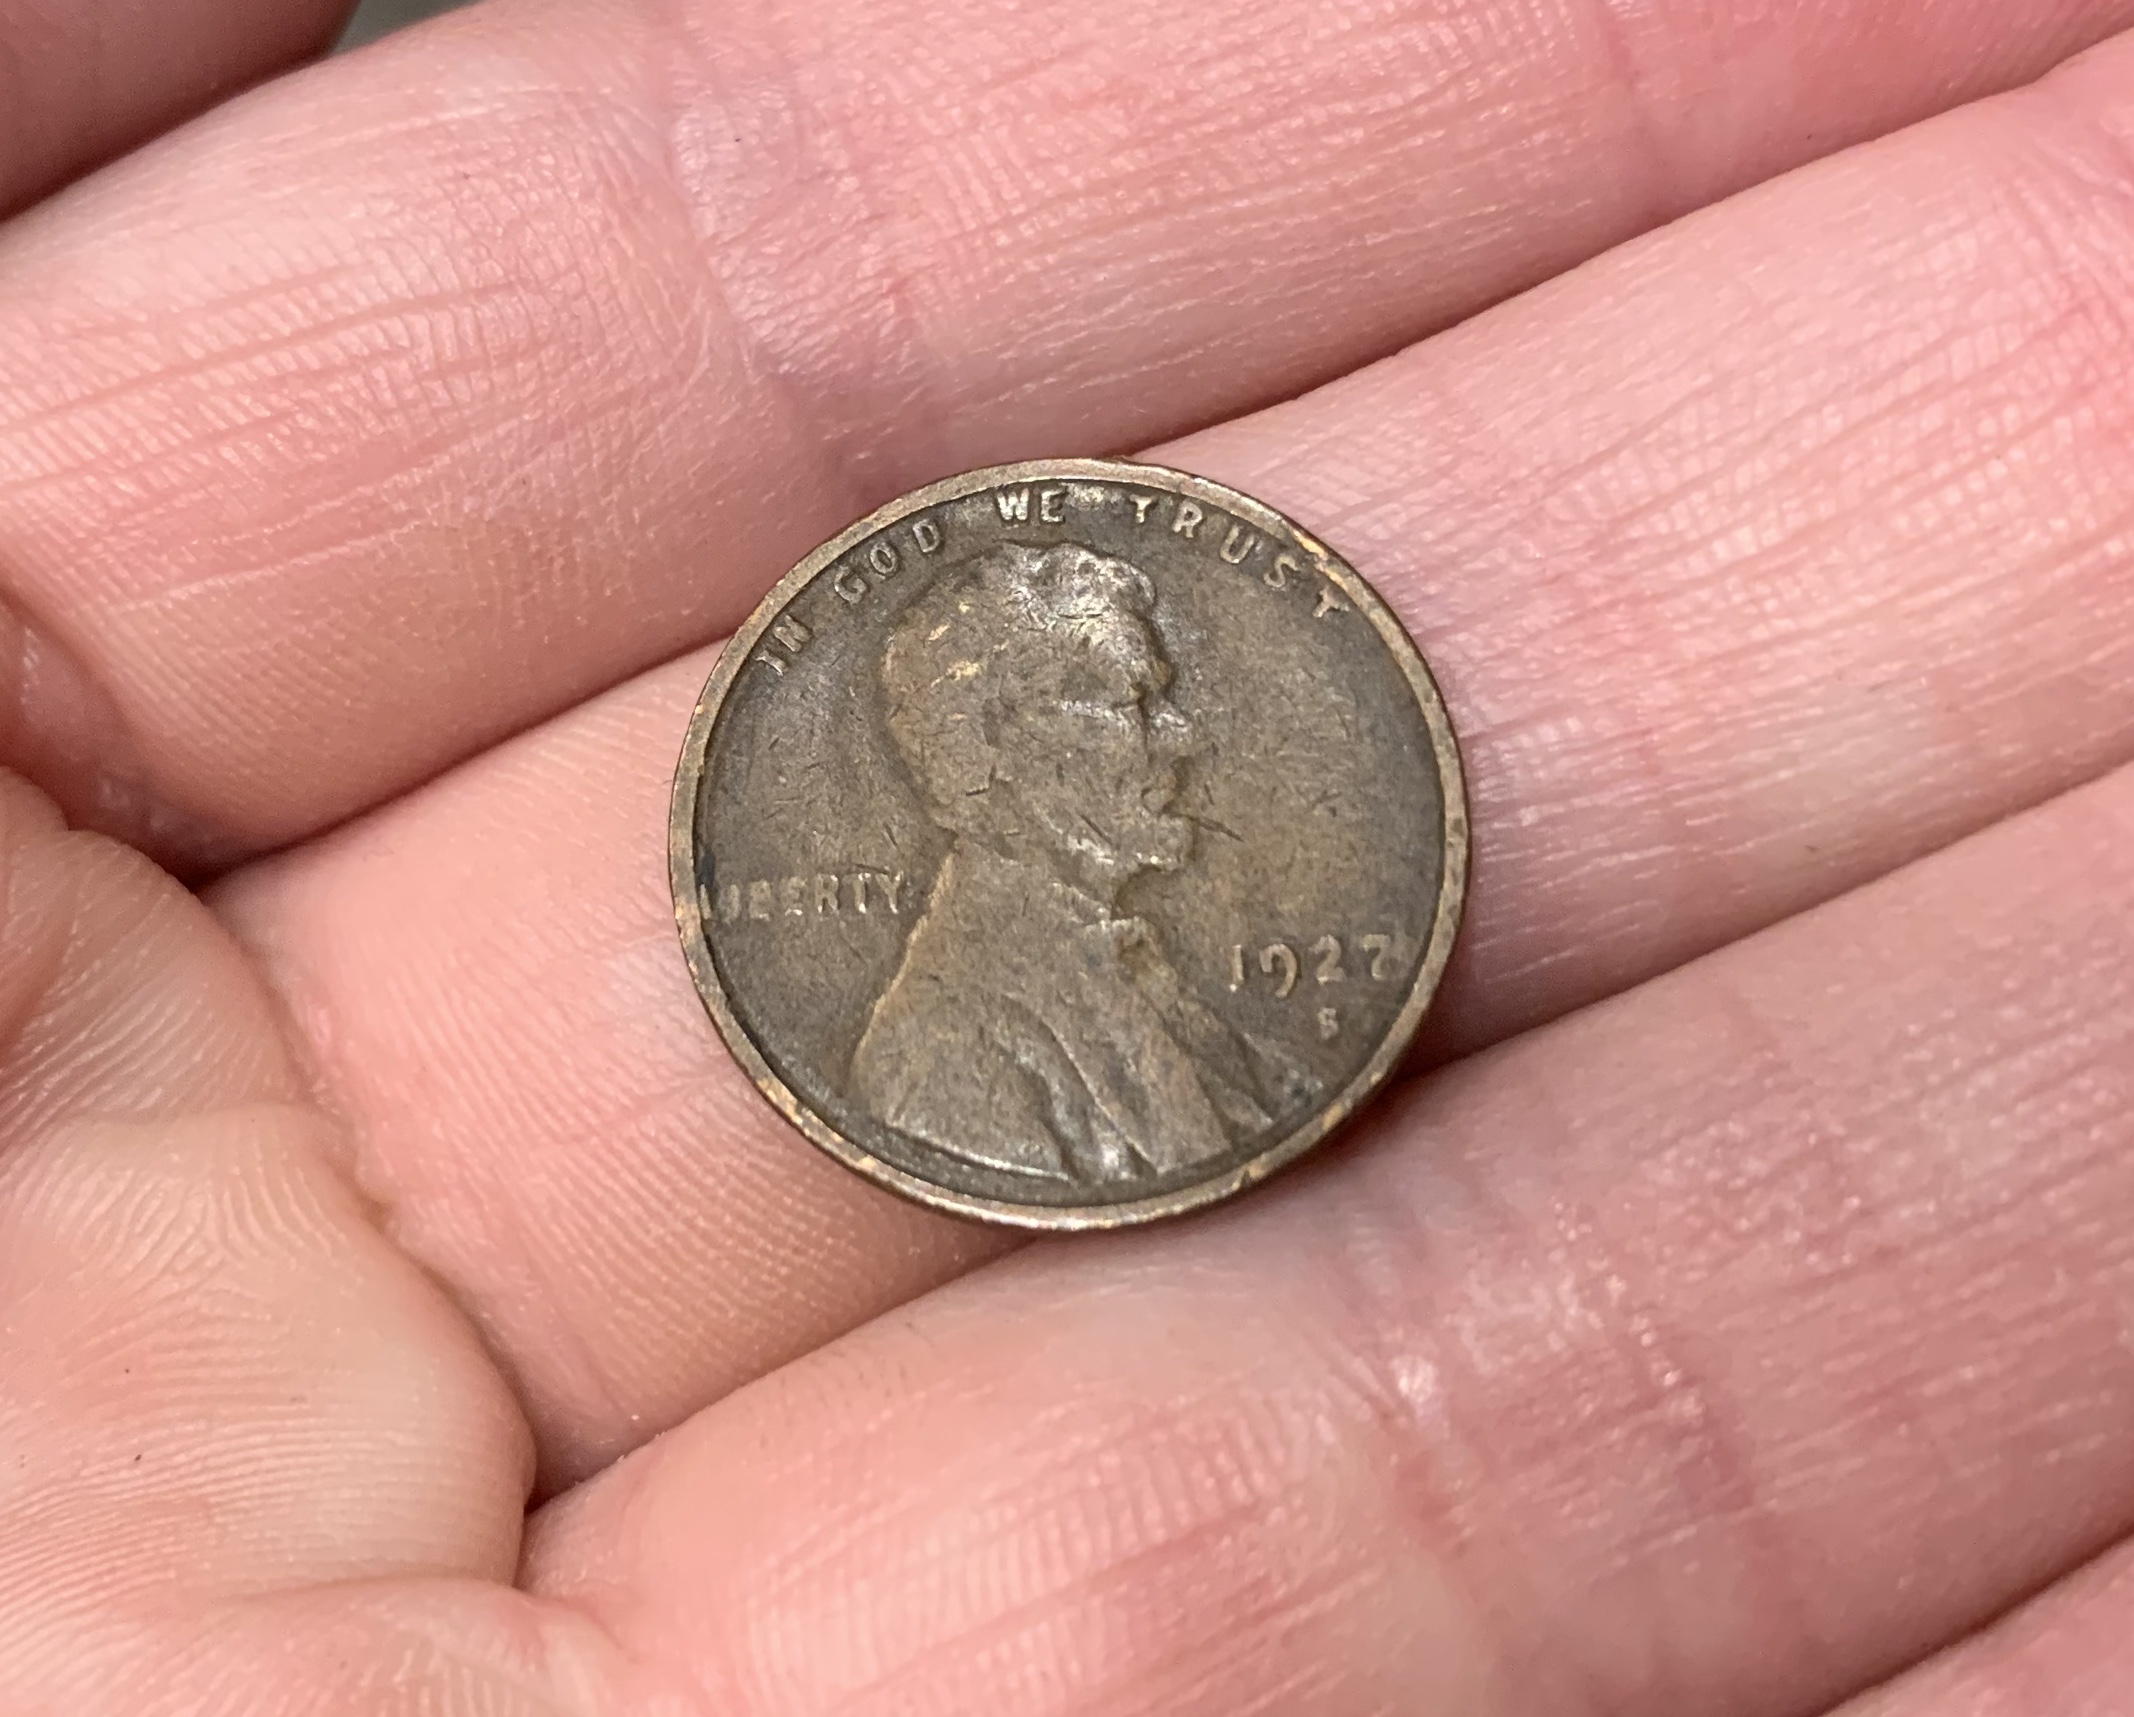 How Much Is A 1927 Penny Worth? See The Value Of Your 1927